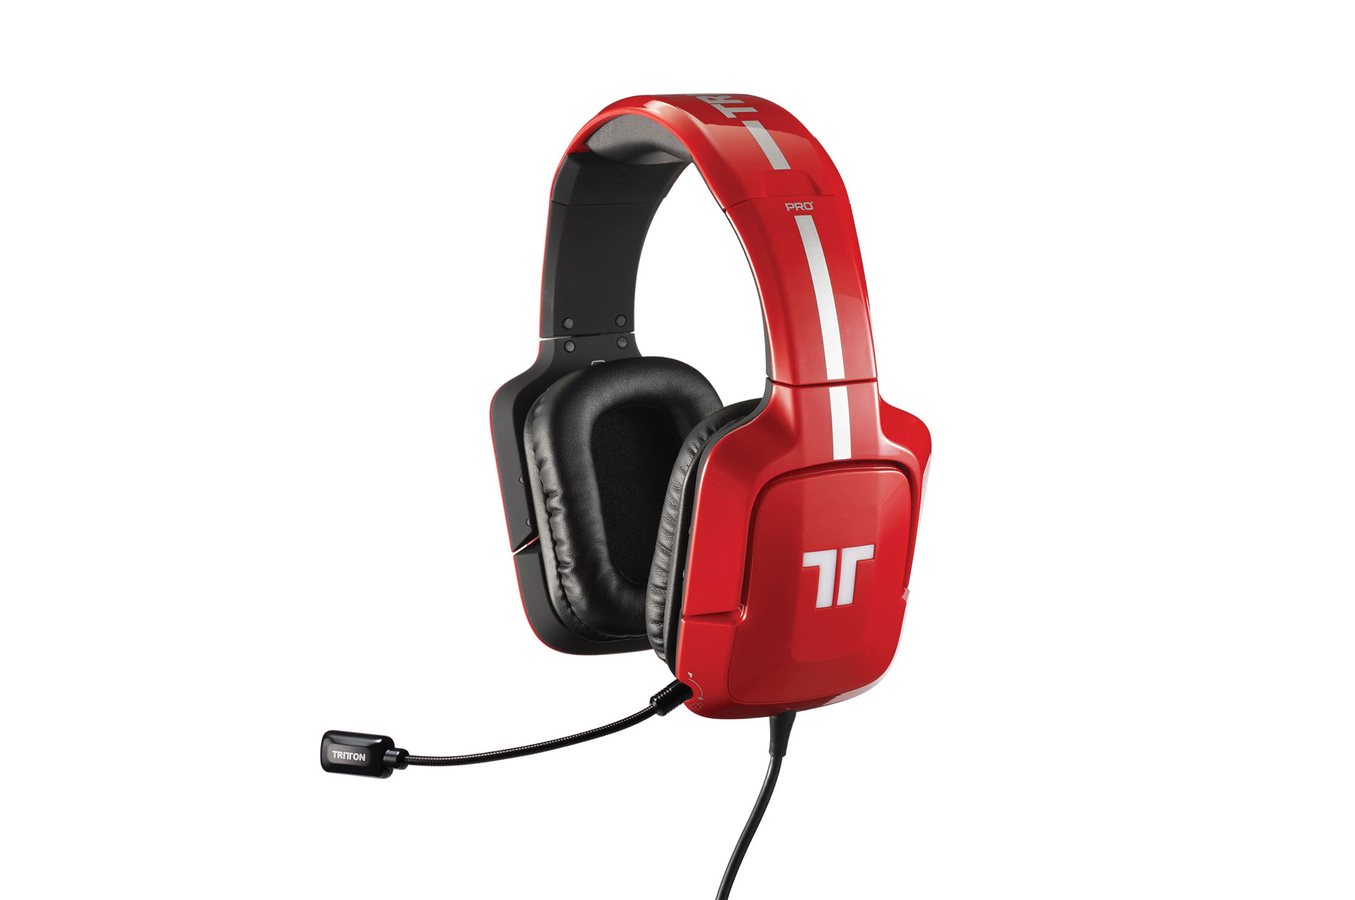 casque micro gamer tritton pro 5 1 surround pour xbox 360 ps3 pc mac rouge pro plus 5. Black Bedroom Furniture Sets. Home Design Ideas